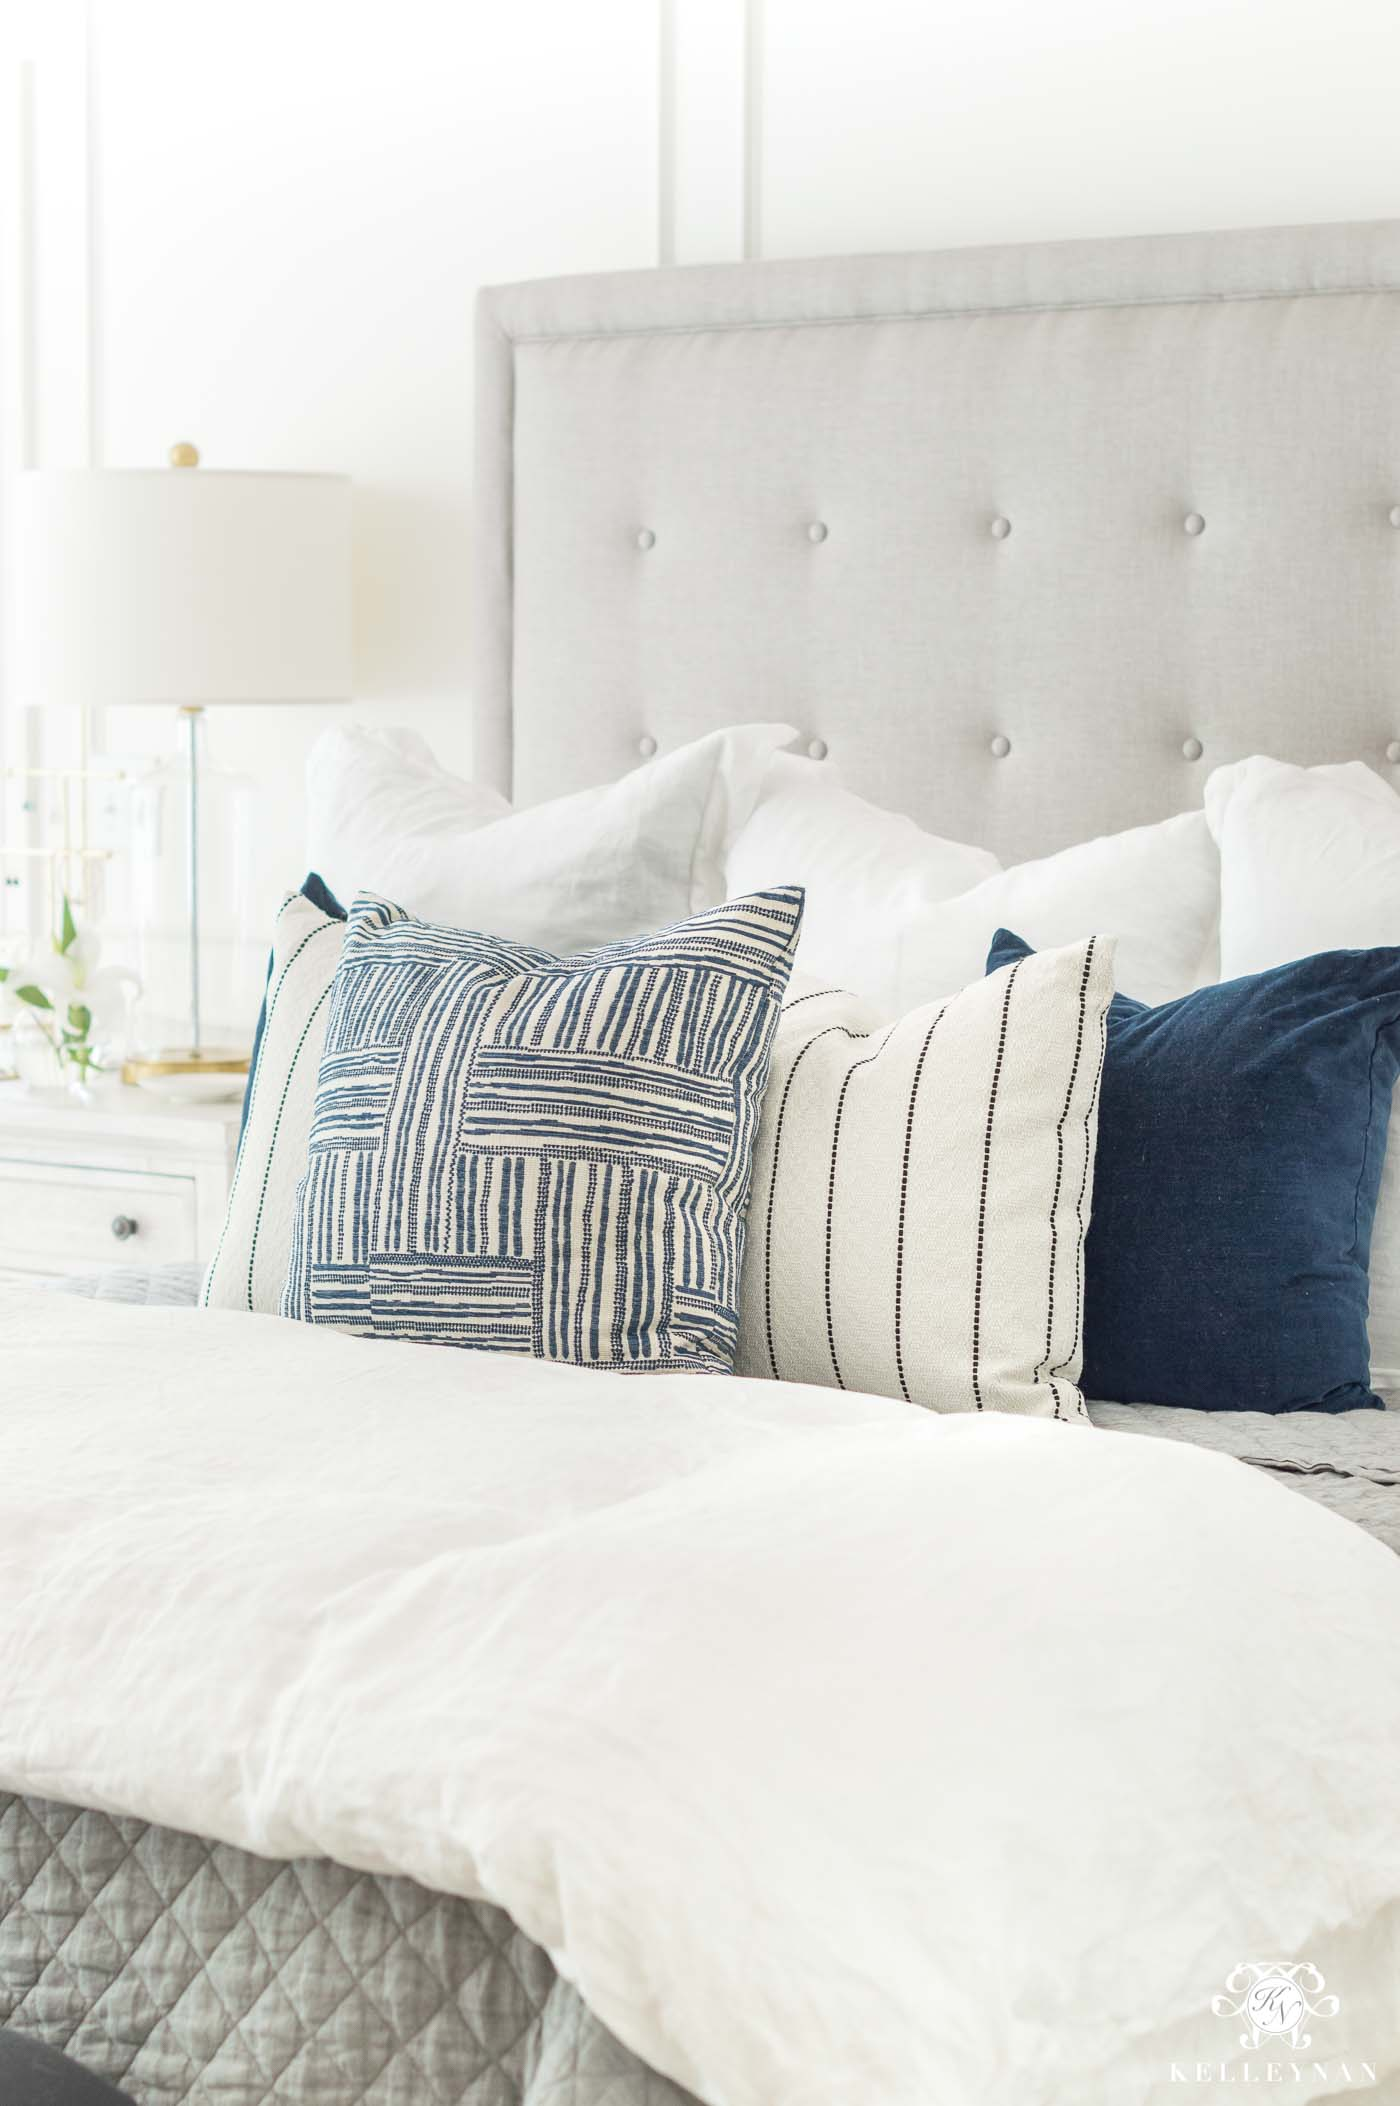 White Bedding With Blue And Pillows For Master Bedroom Ideas A Tufted Headboard